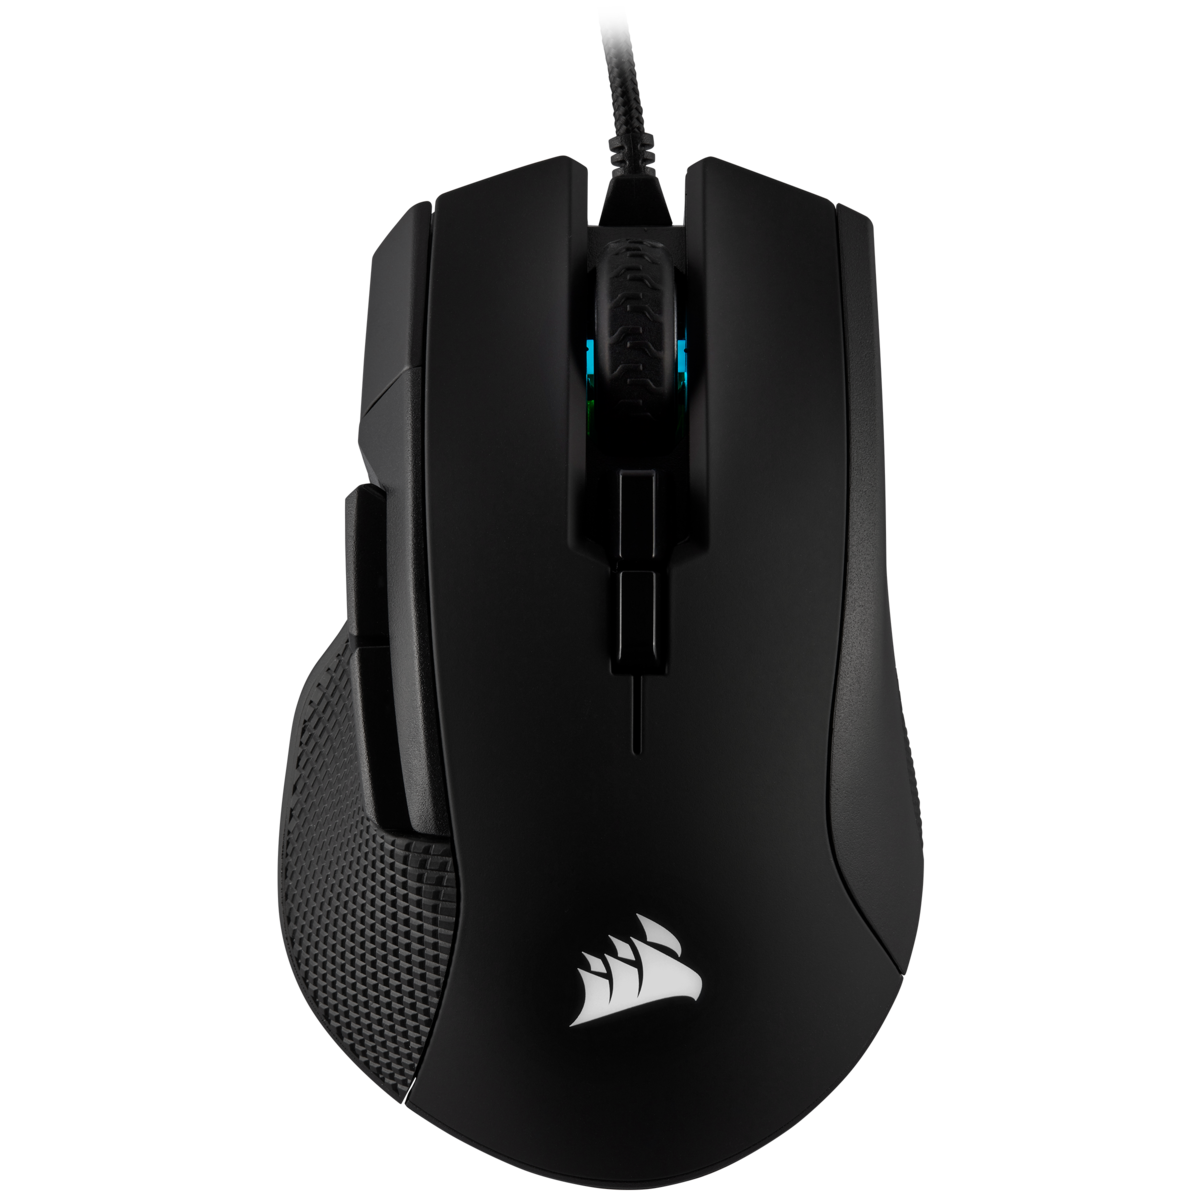 Chuột Corsair Iron Claw RGB - FPS/MOBA Gaming Mouse